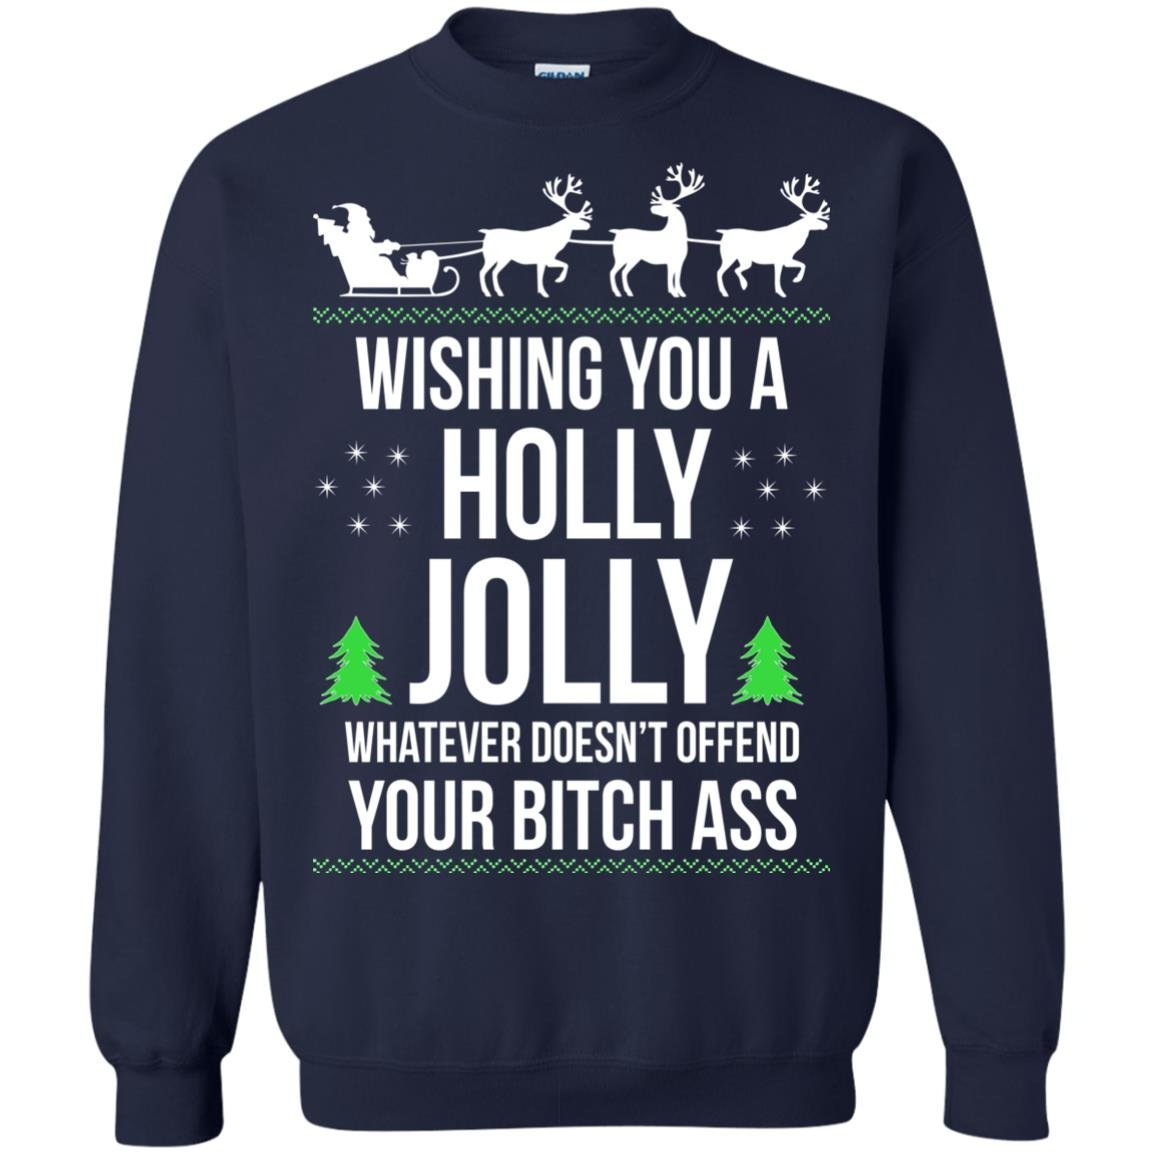 image 1189 - Wishing you a holly jolly whatever doesn't offend your bitch ass sweater, shirt